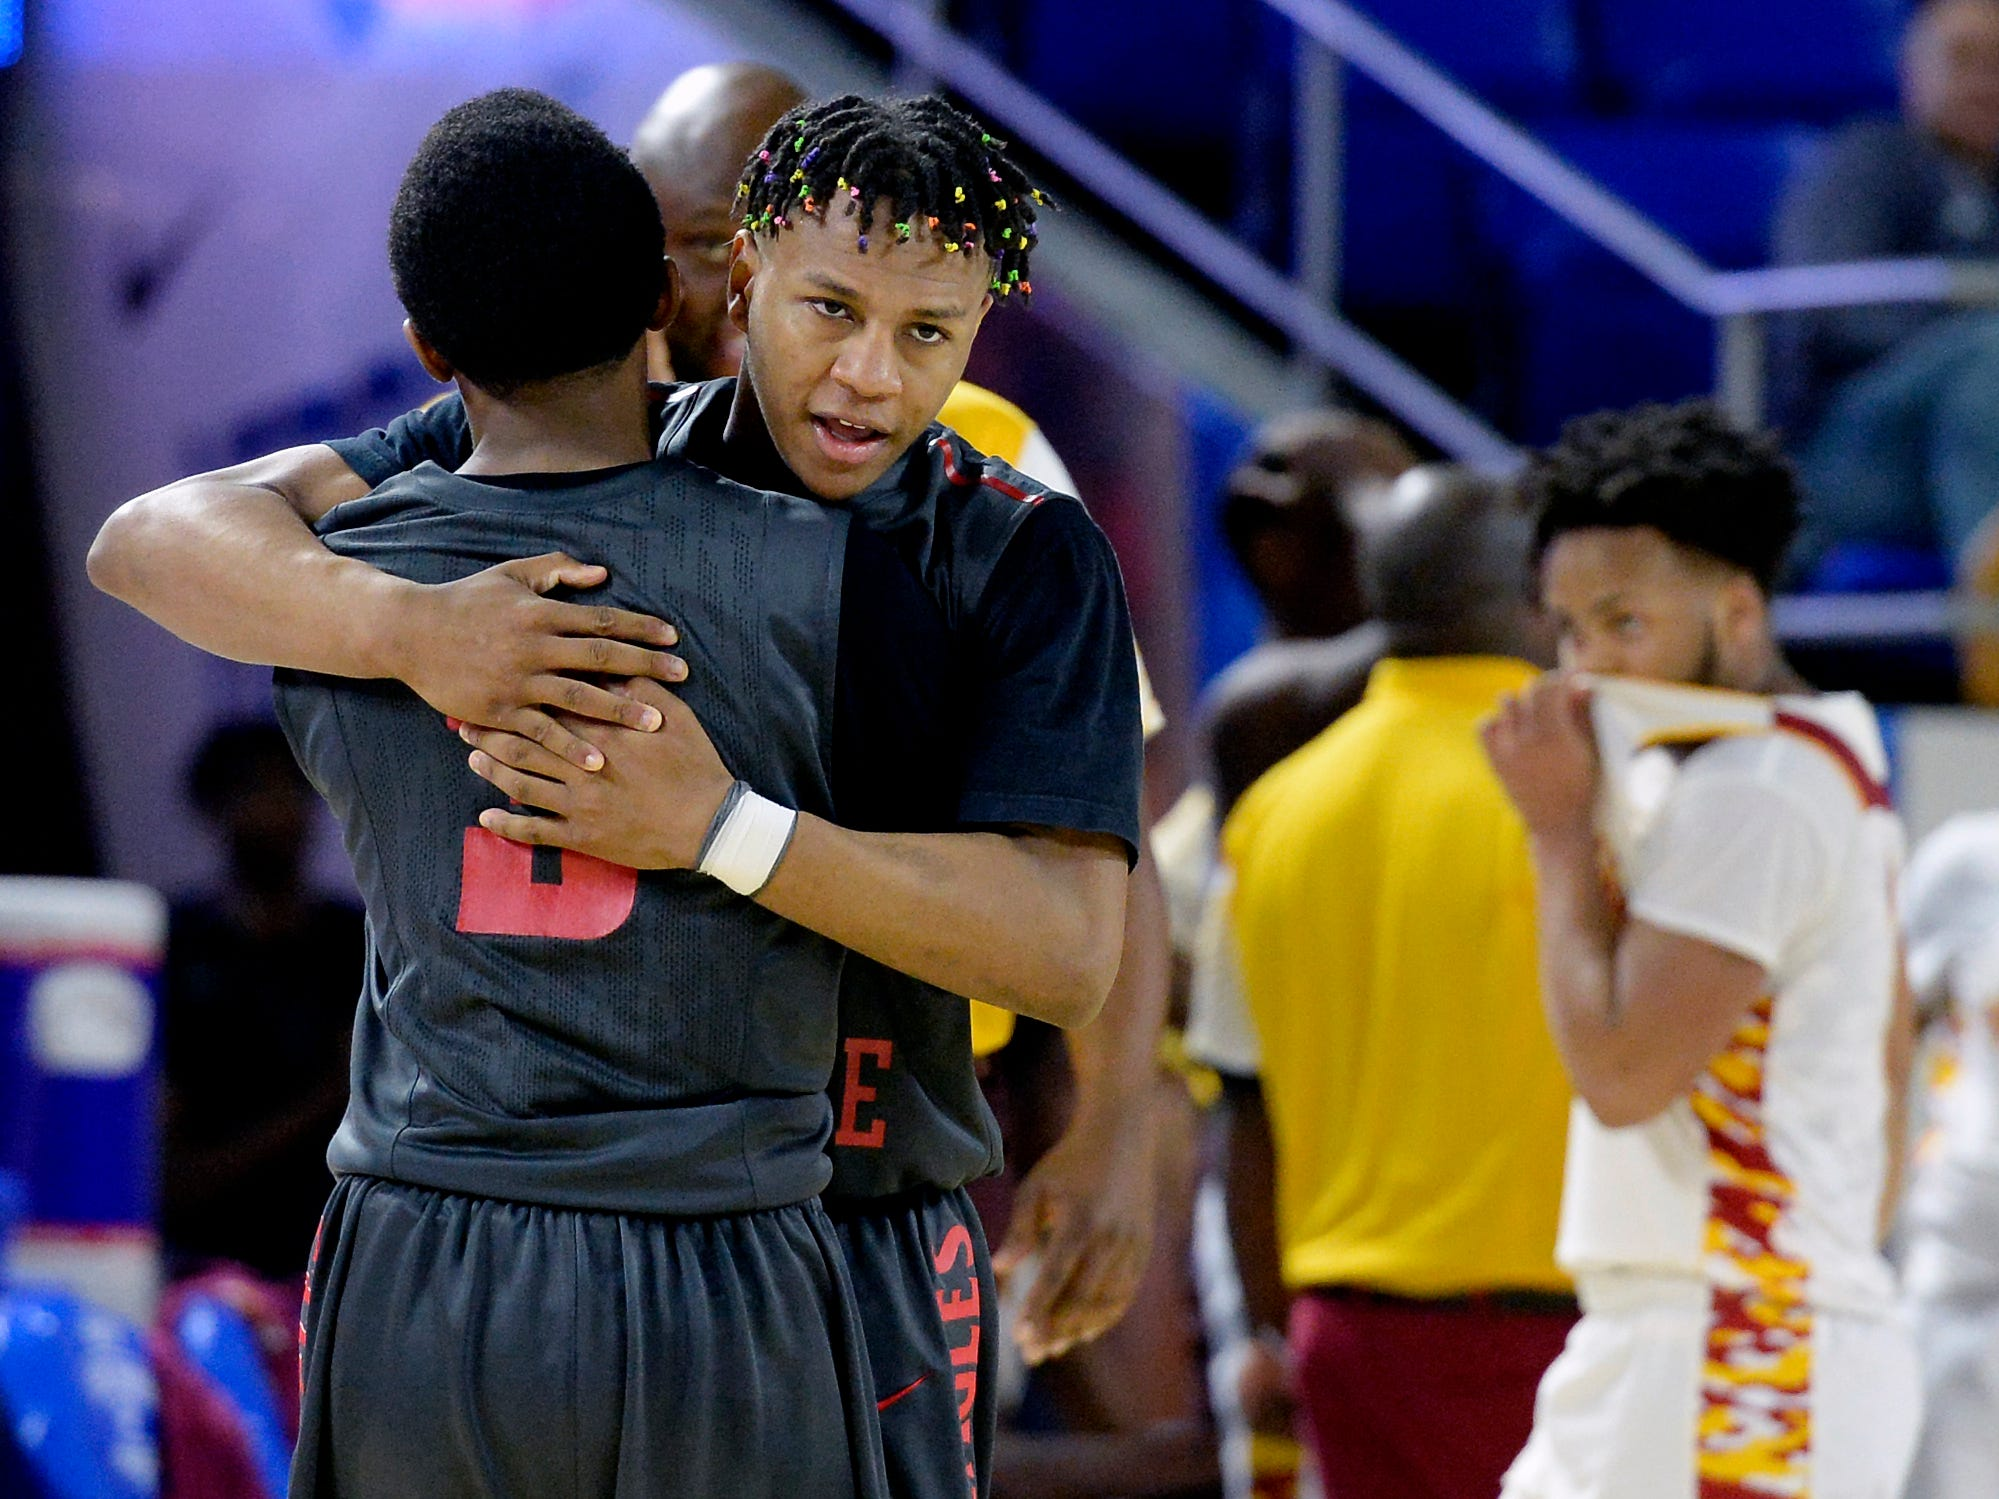 East Nashville guard Taras Carter hugs Caleb Grimes (3) after the team's 78-75 win against Howard in an Class AA boys' state basketball quarterfinal game Wednesday, March 13, 2019, in Murfreesboro, Tenn.